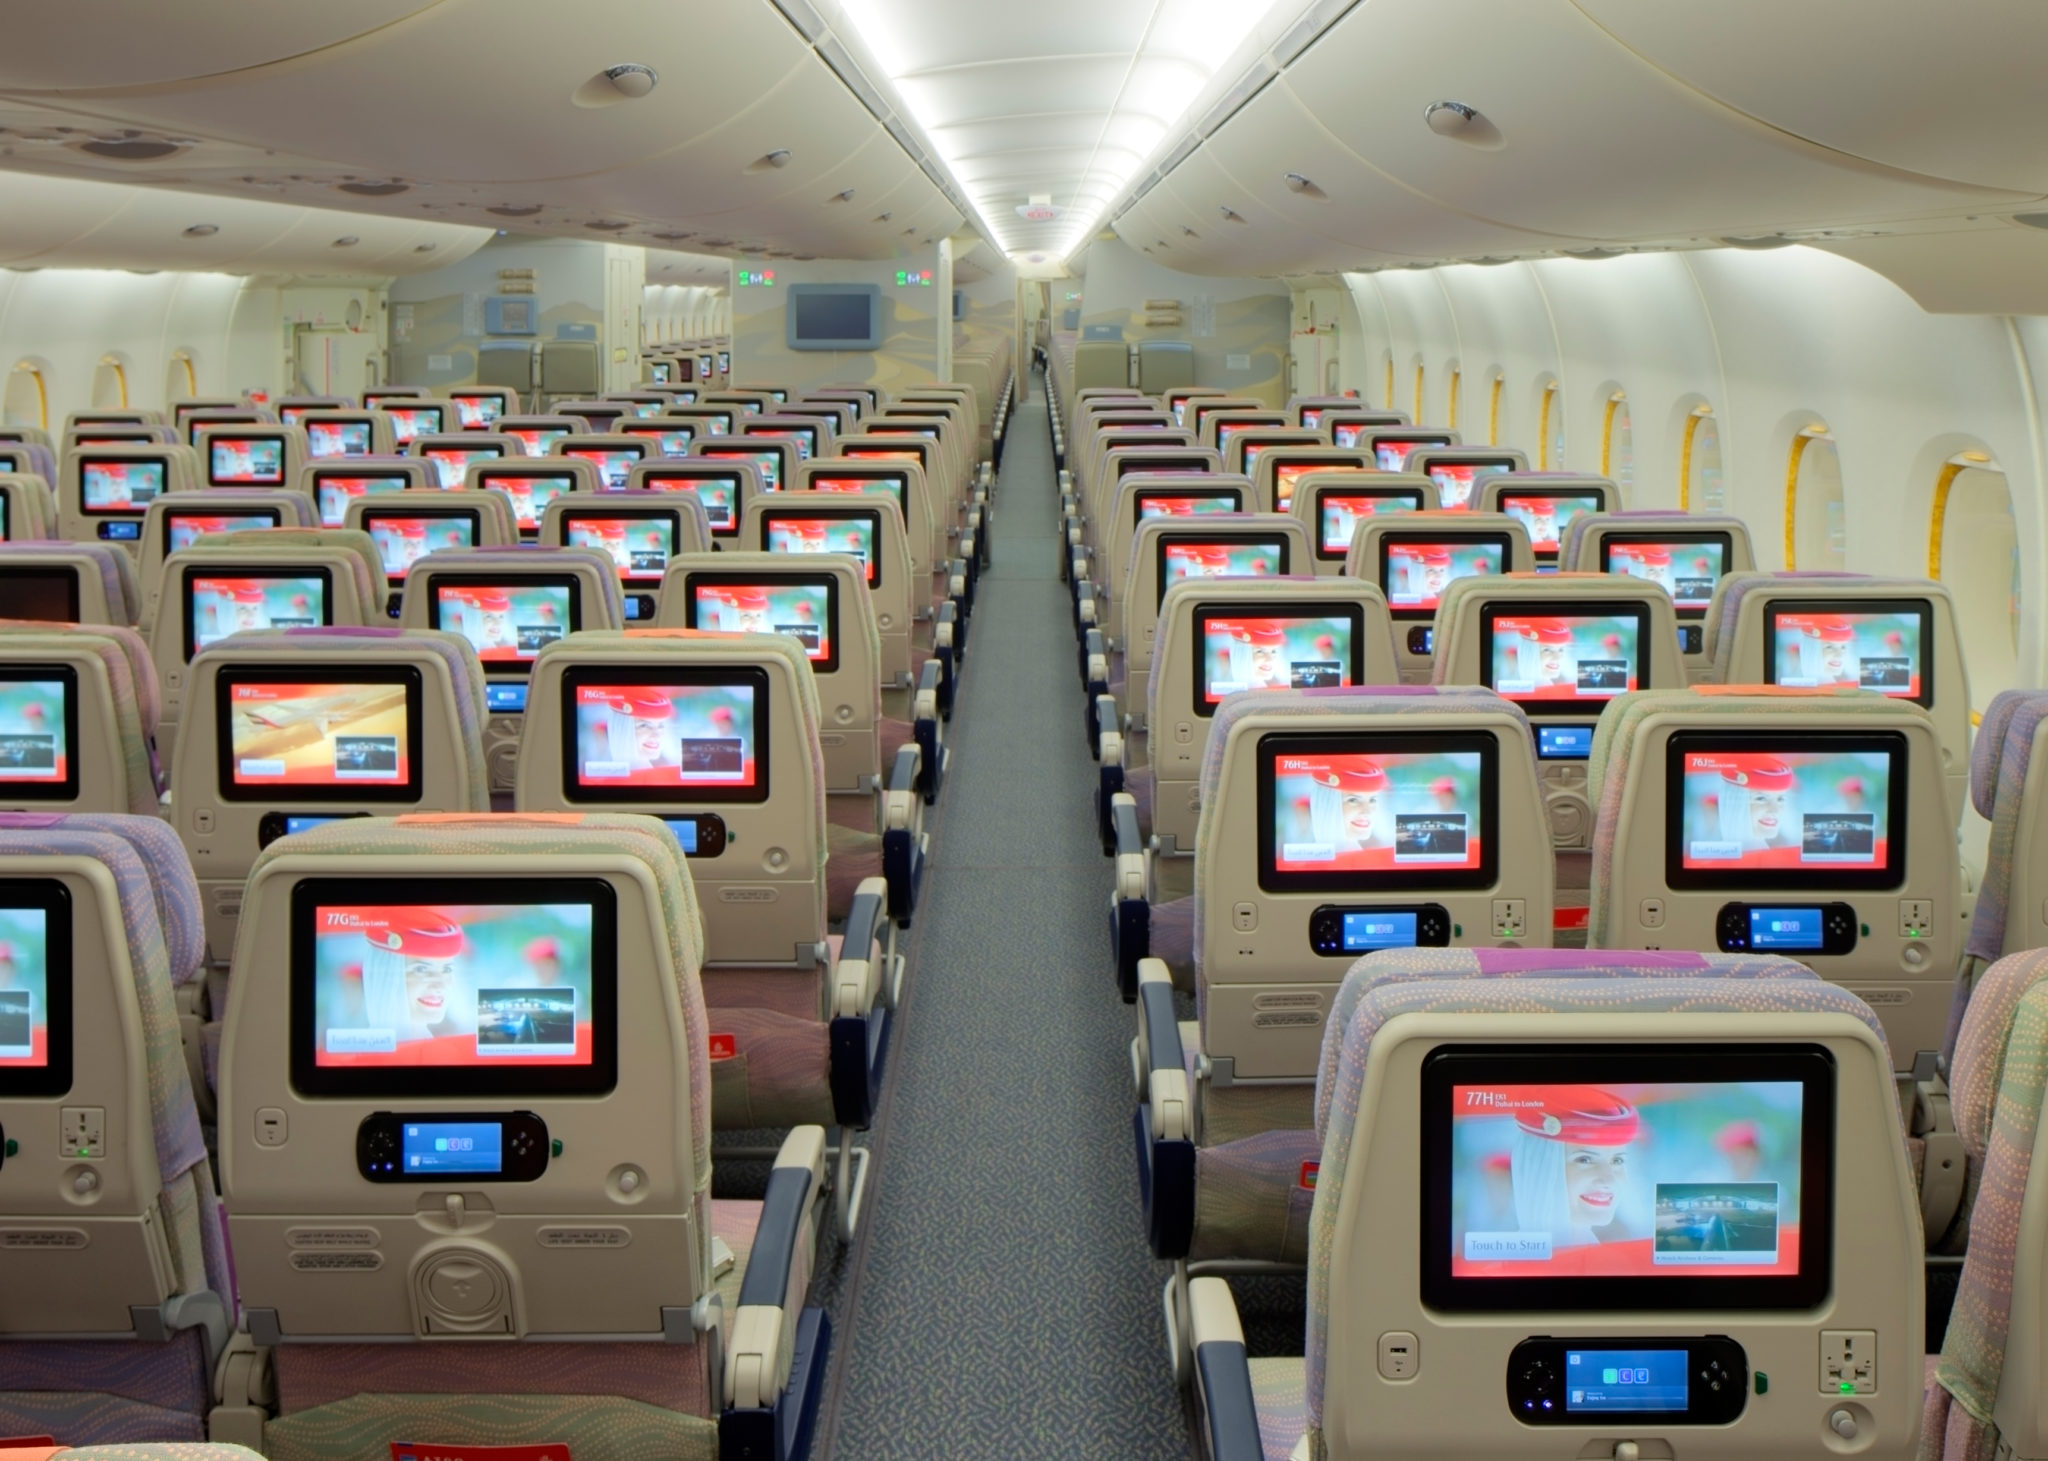 Emirates IFE has many options that help the time fly by on a long haul flight. Image: Emirates